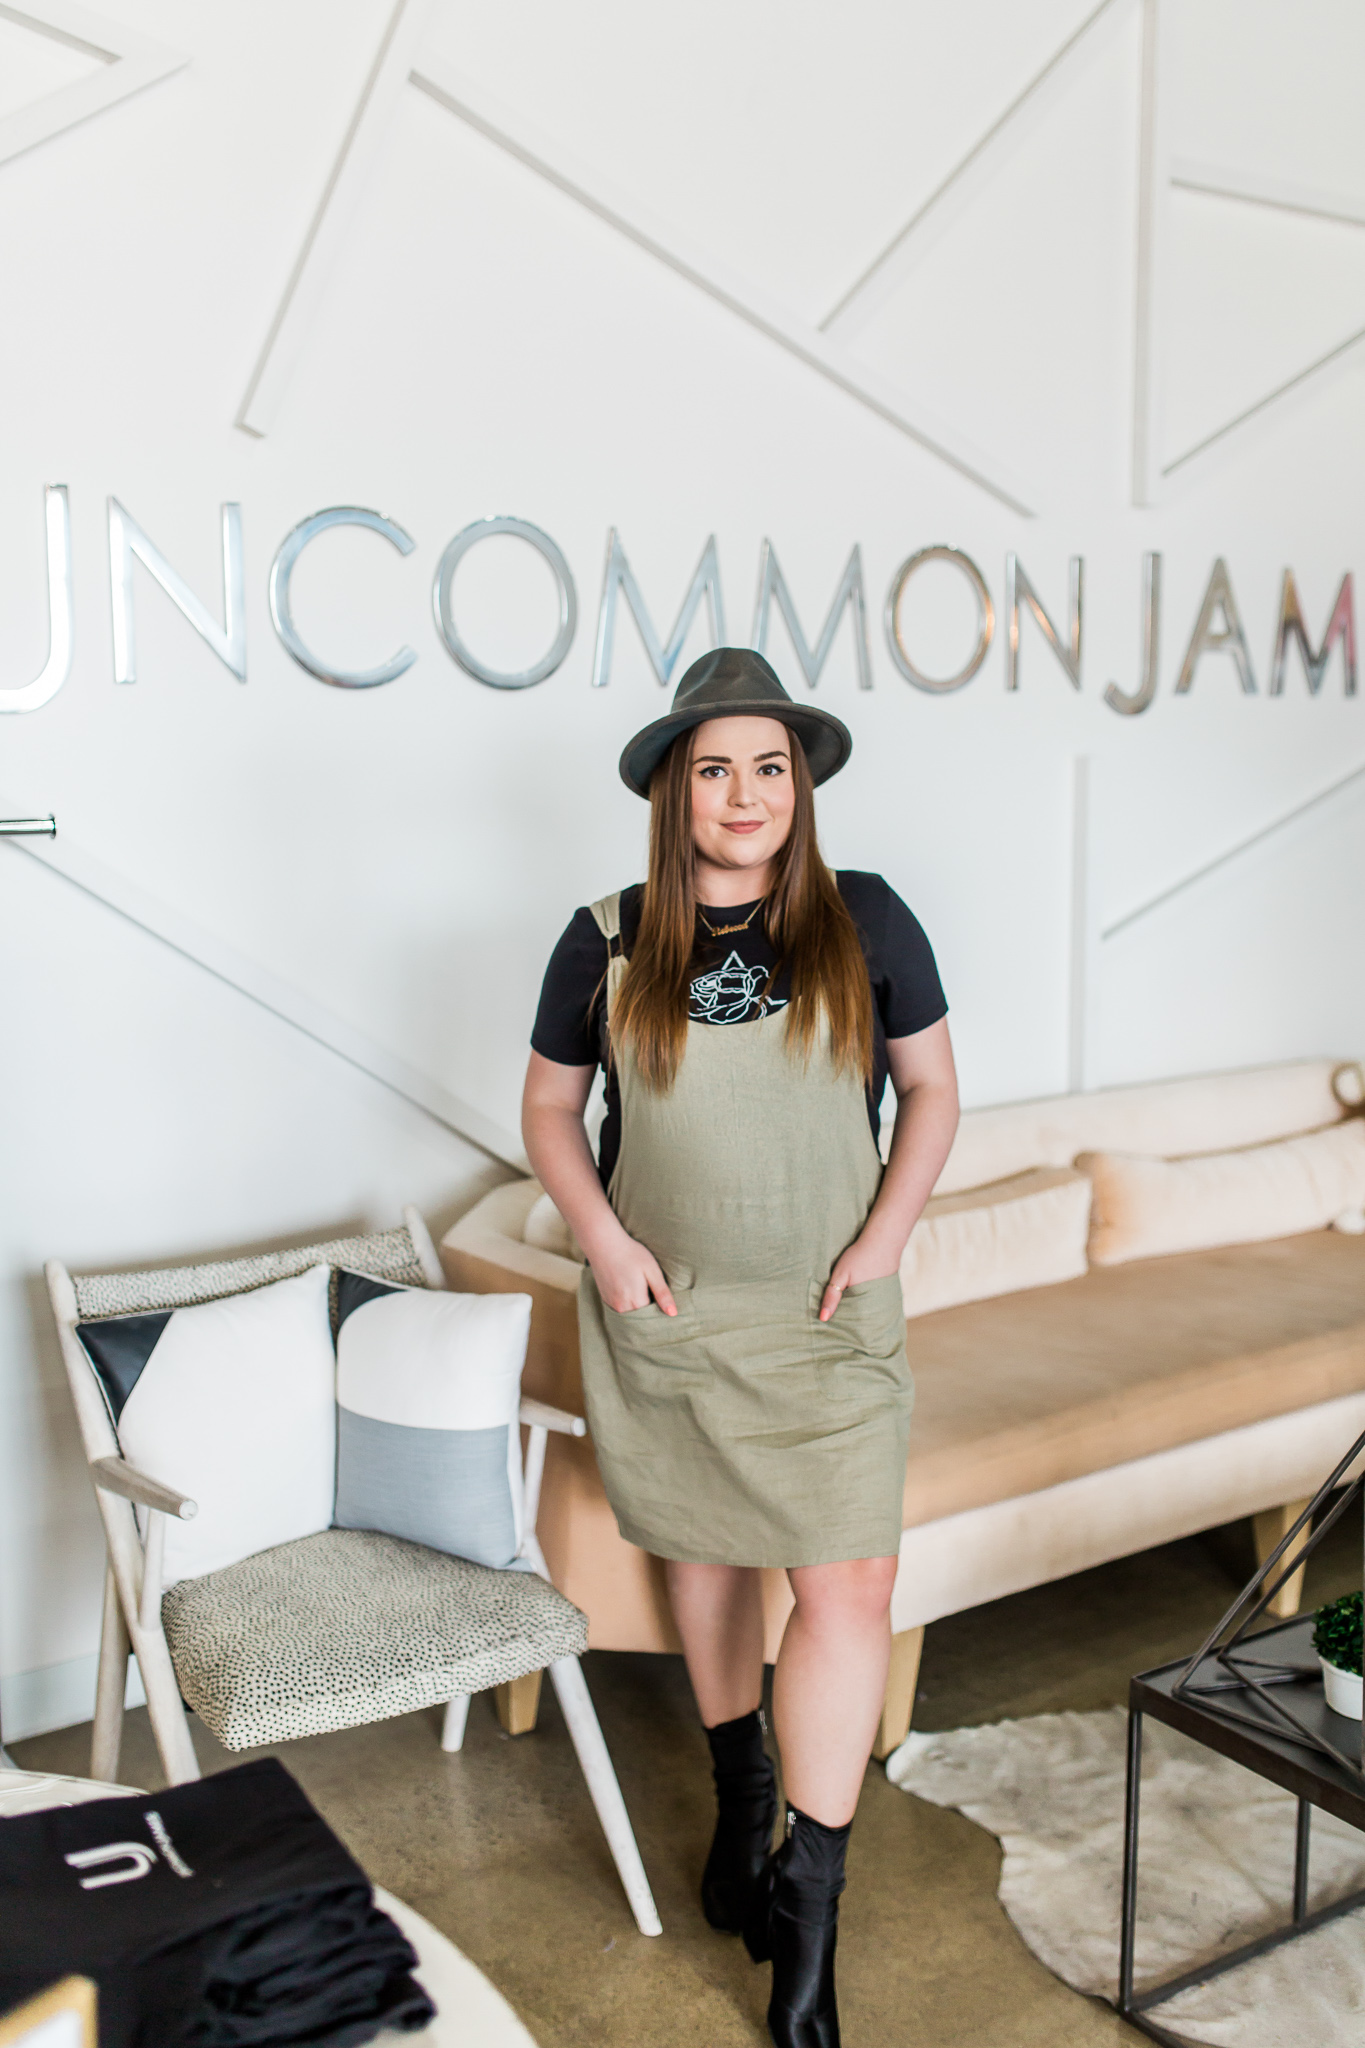 Uncommon James - 601 9th Ave S Nashville, TN 37203